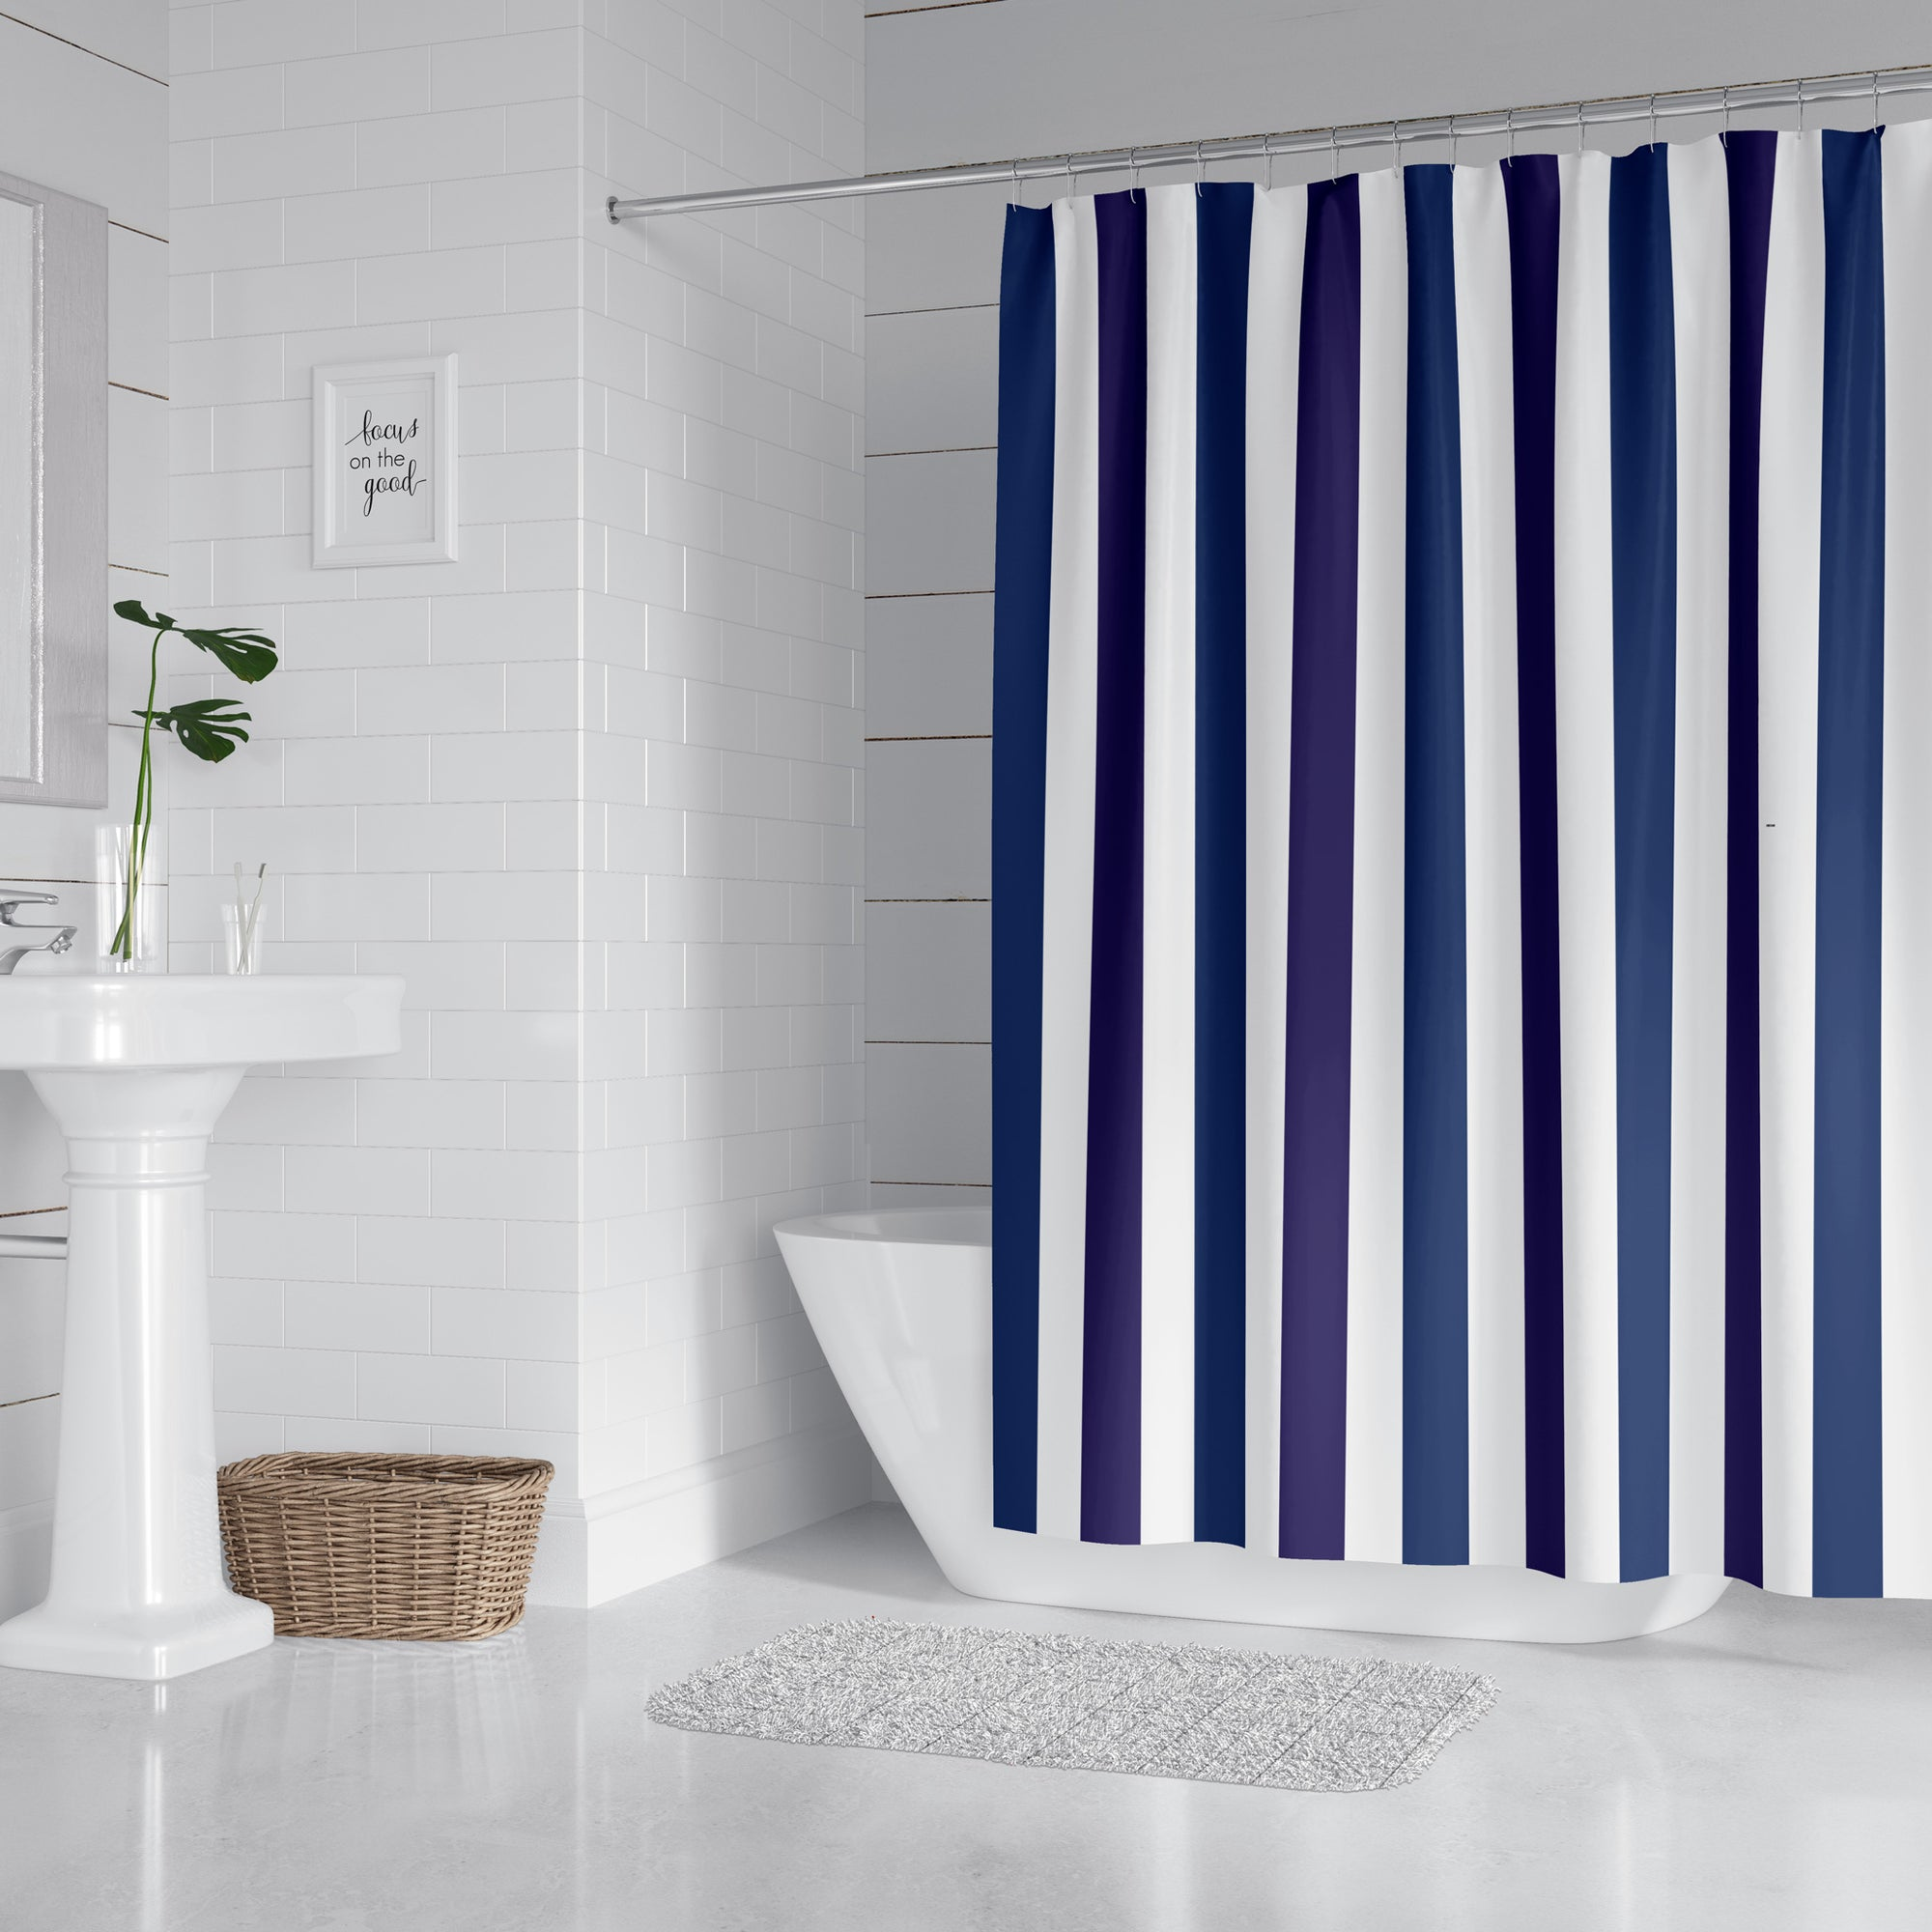 Blue and Purple Striped Shower Curtain